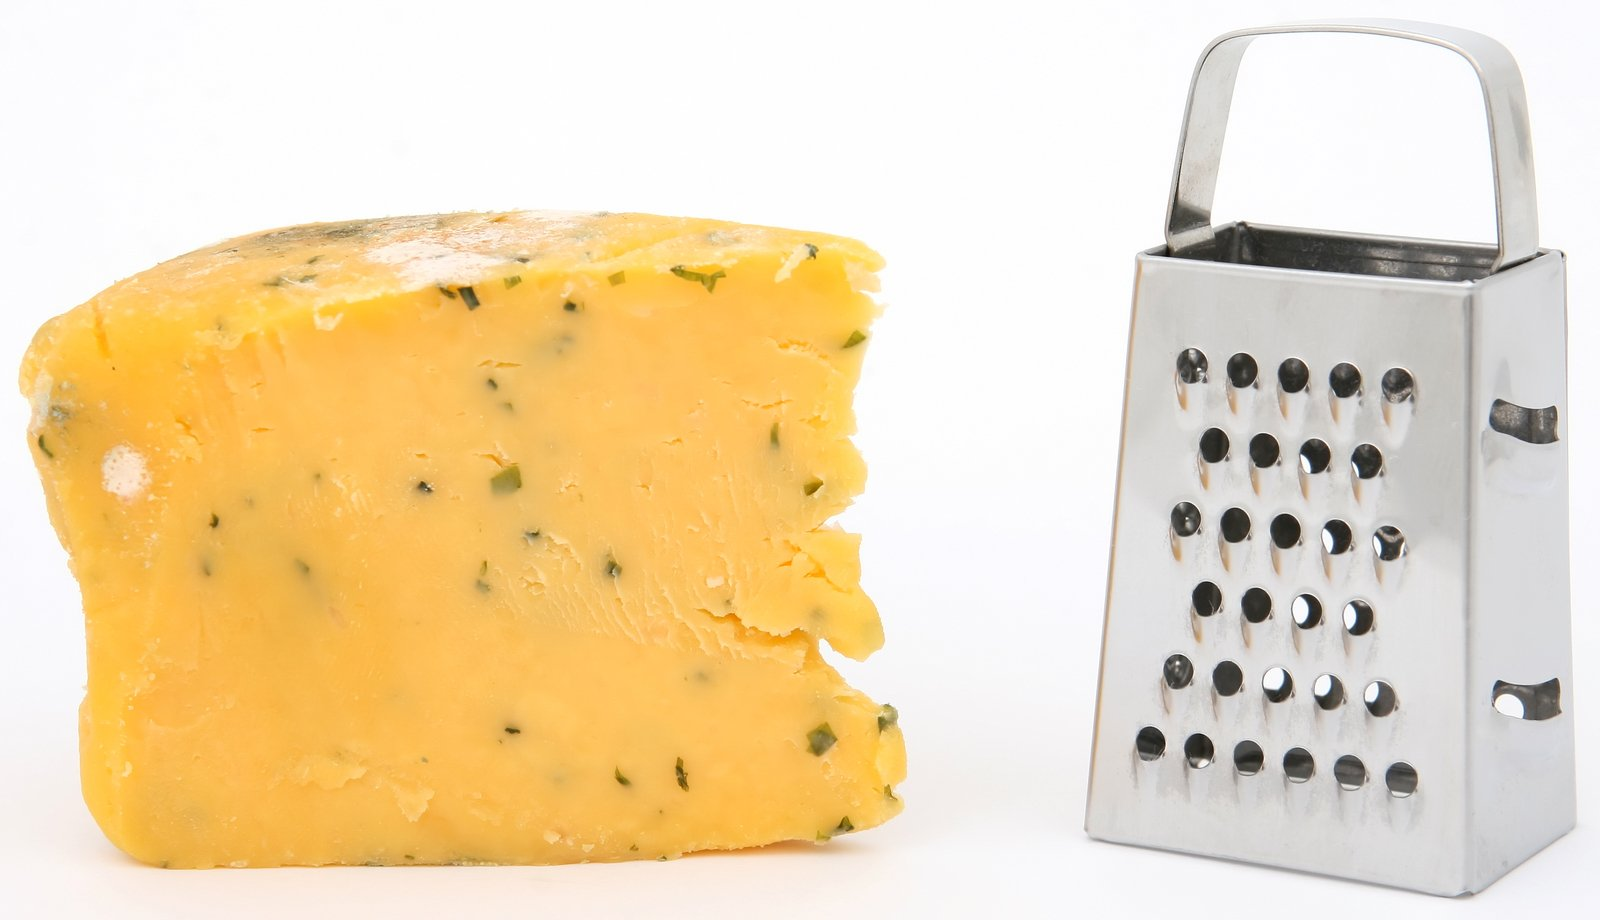 Free Mouldy Cheese And Grater Stock Photo